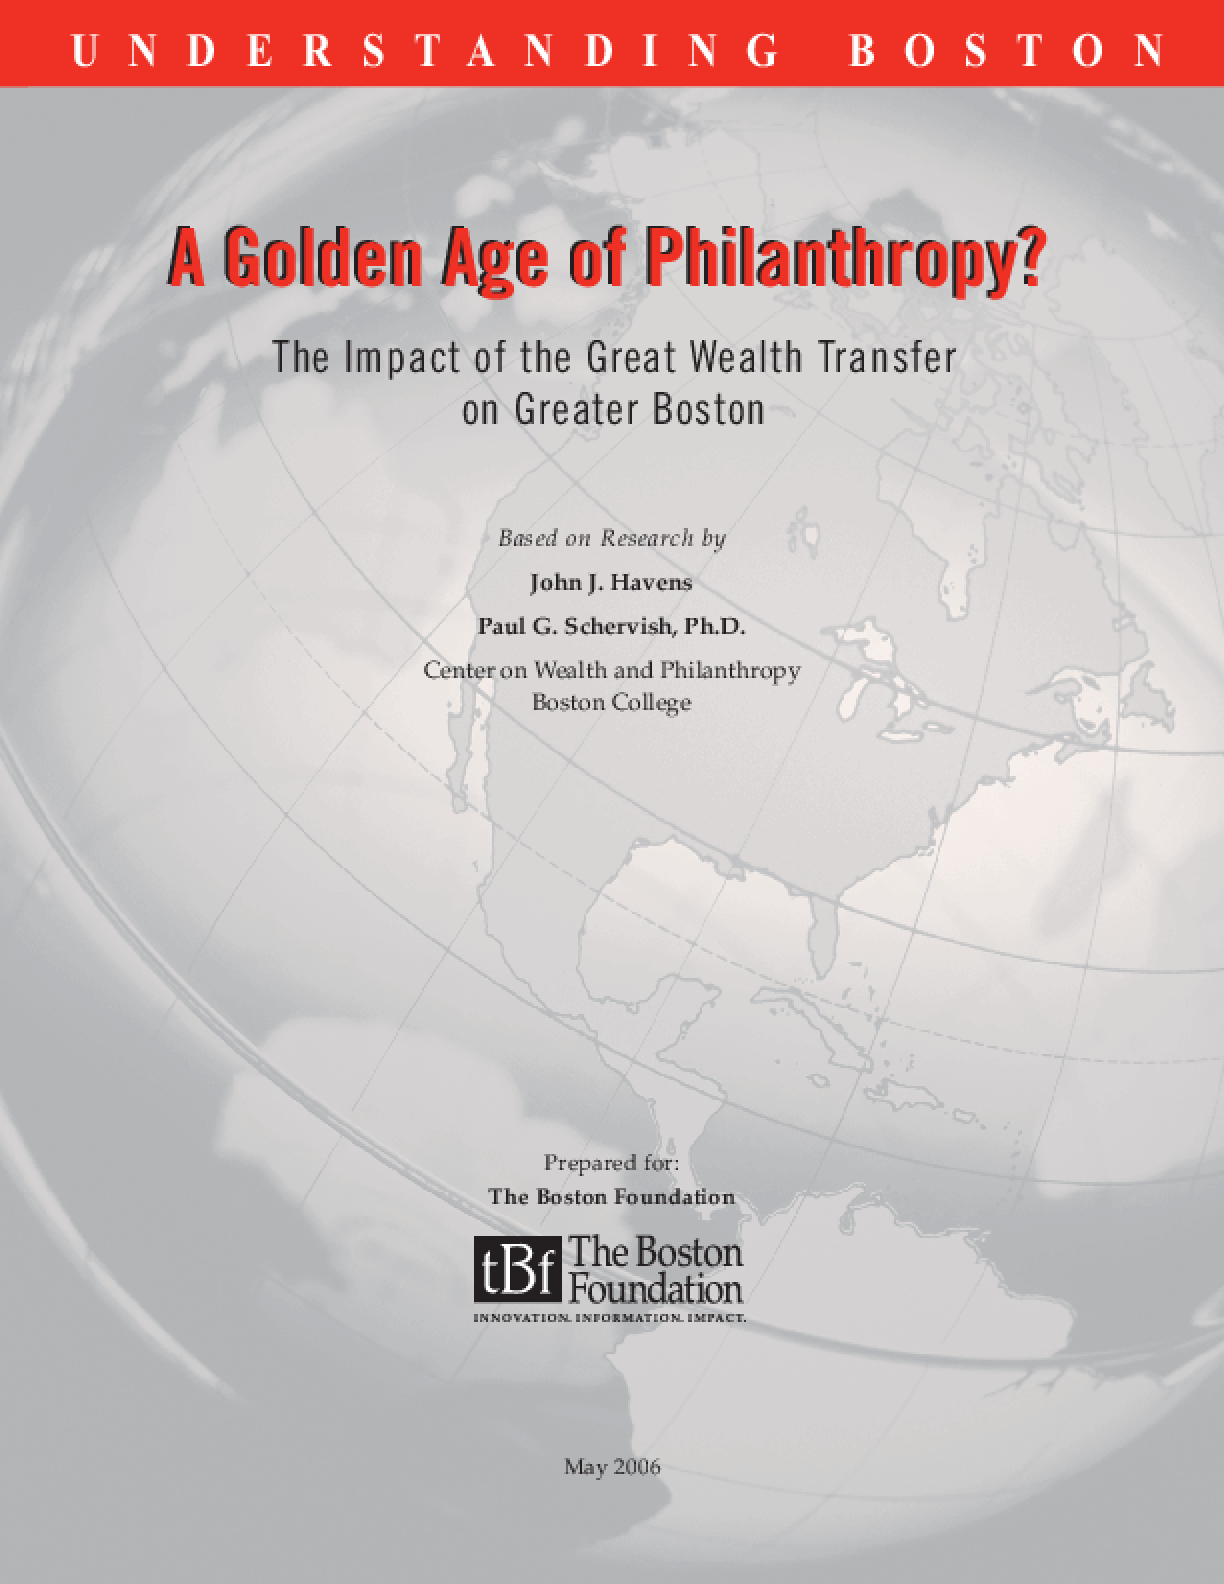 A Golden Age of Philanthropy?: The Impact of the Great Wealth Transfer on Greater Boston